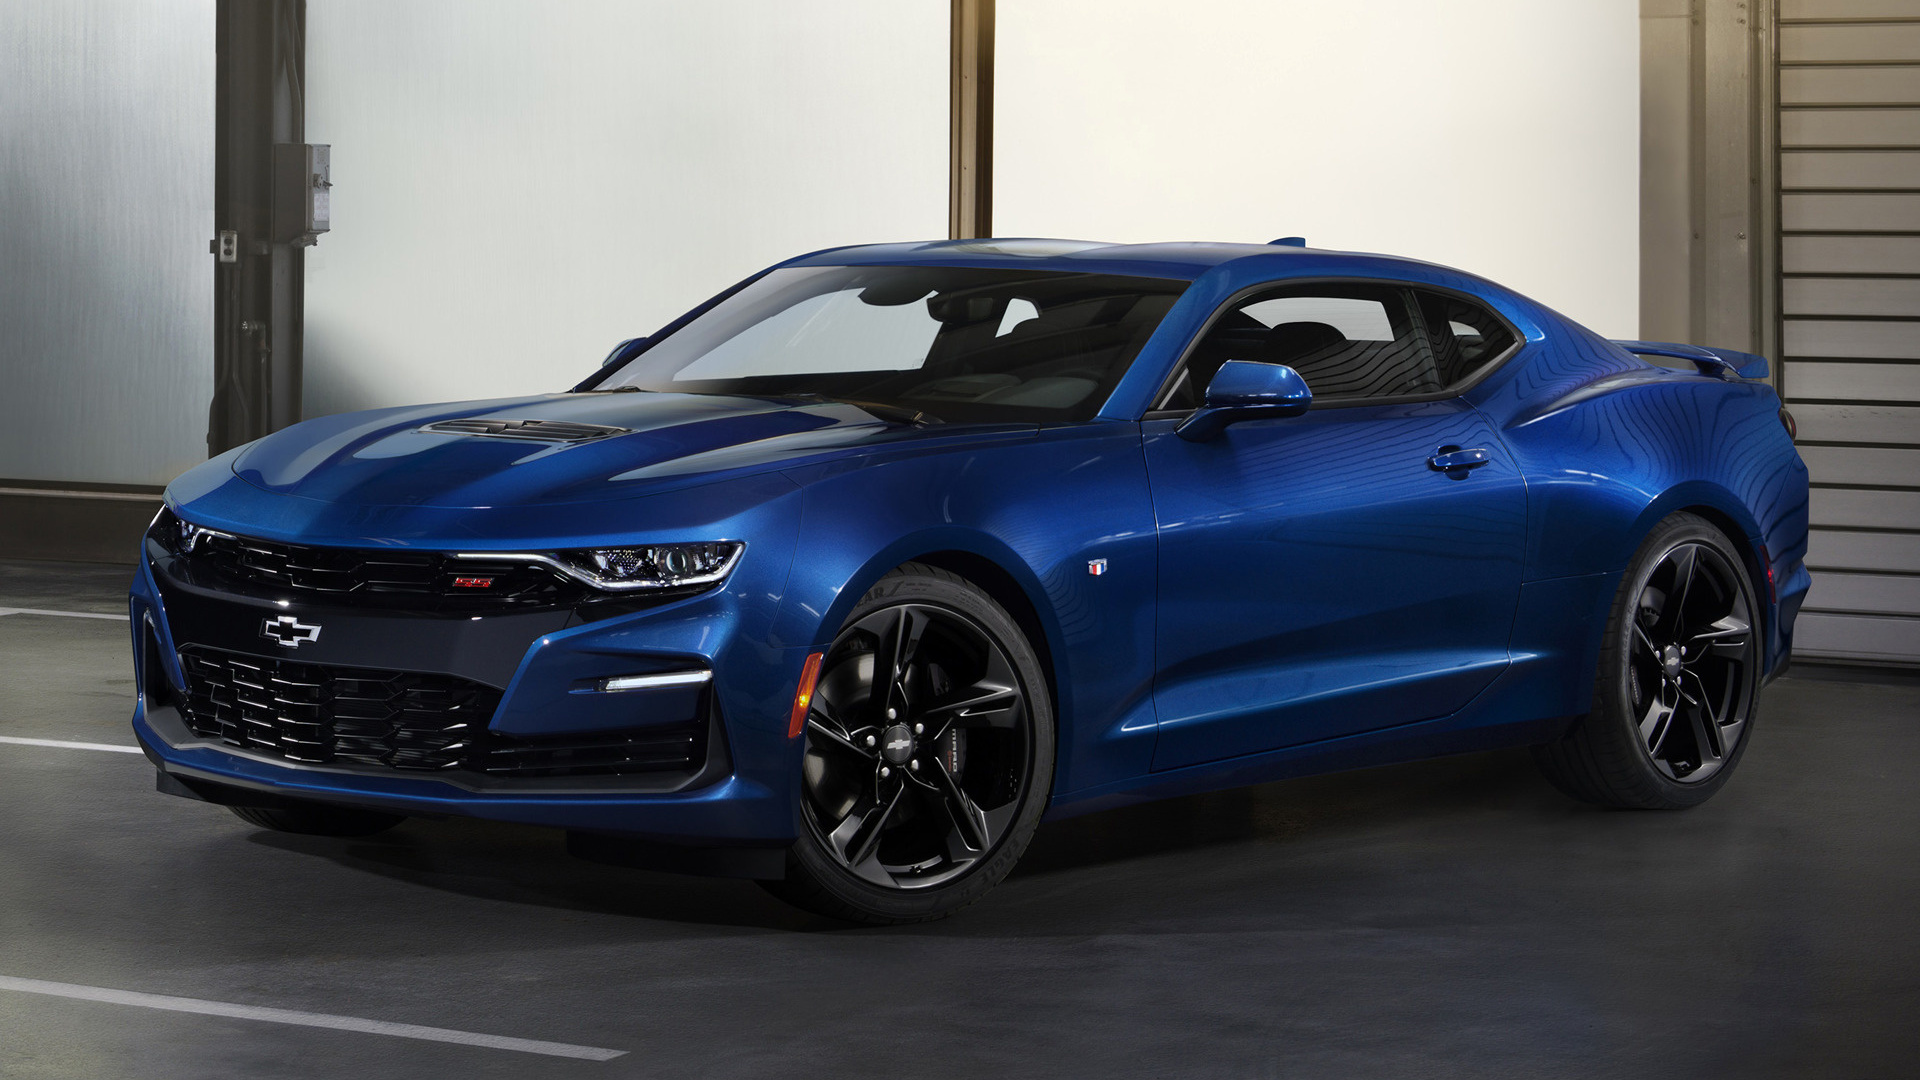 Chevrolet Camaro Ss 2019 Wallpapers And Hd Images Car